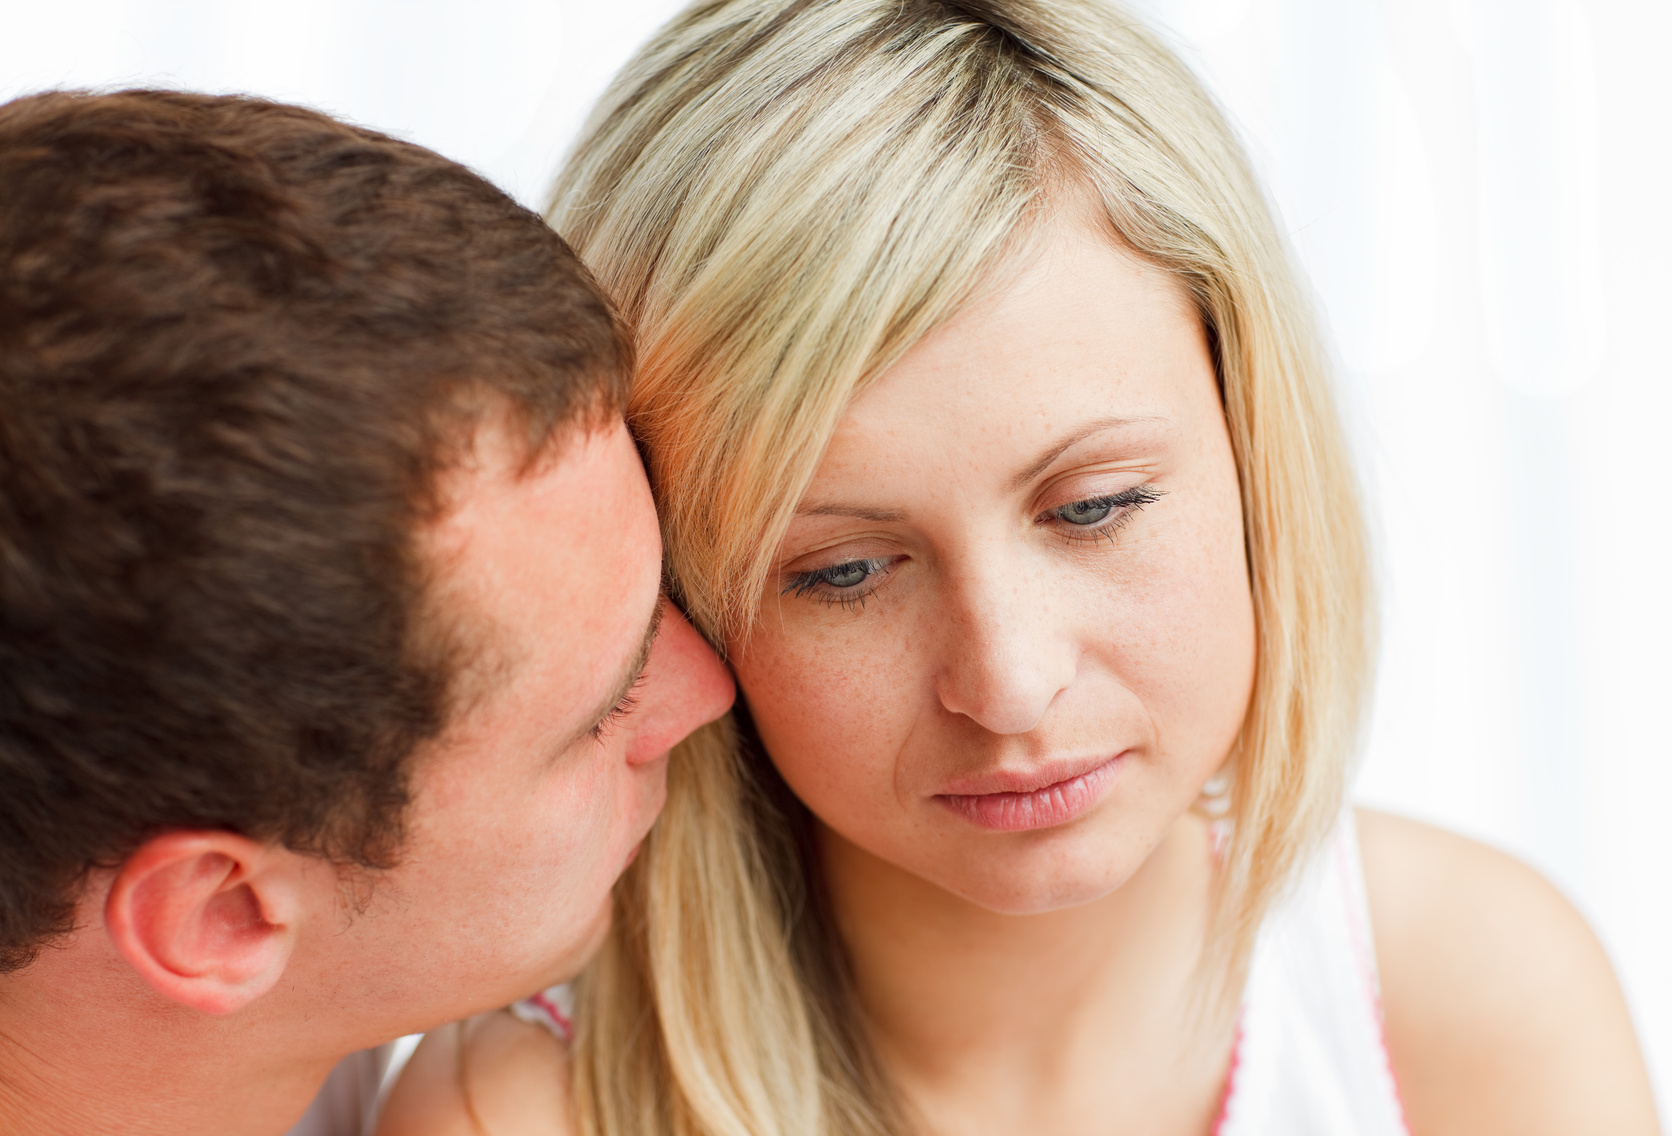 Close-up of a man kissing a sad woman